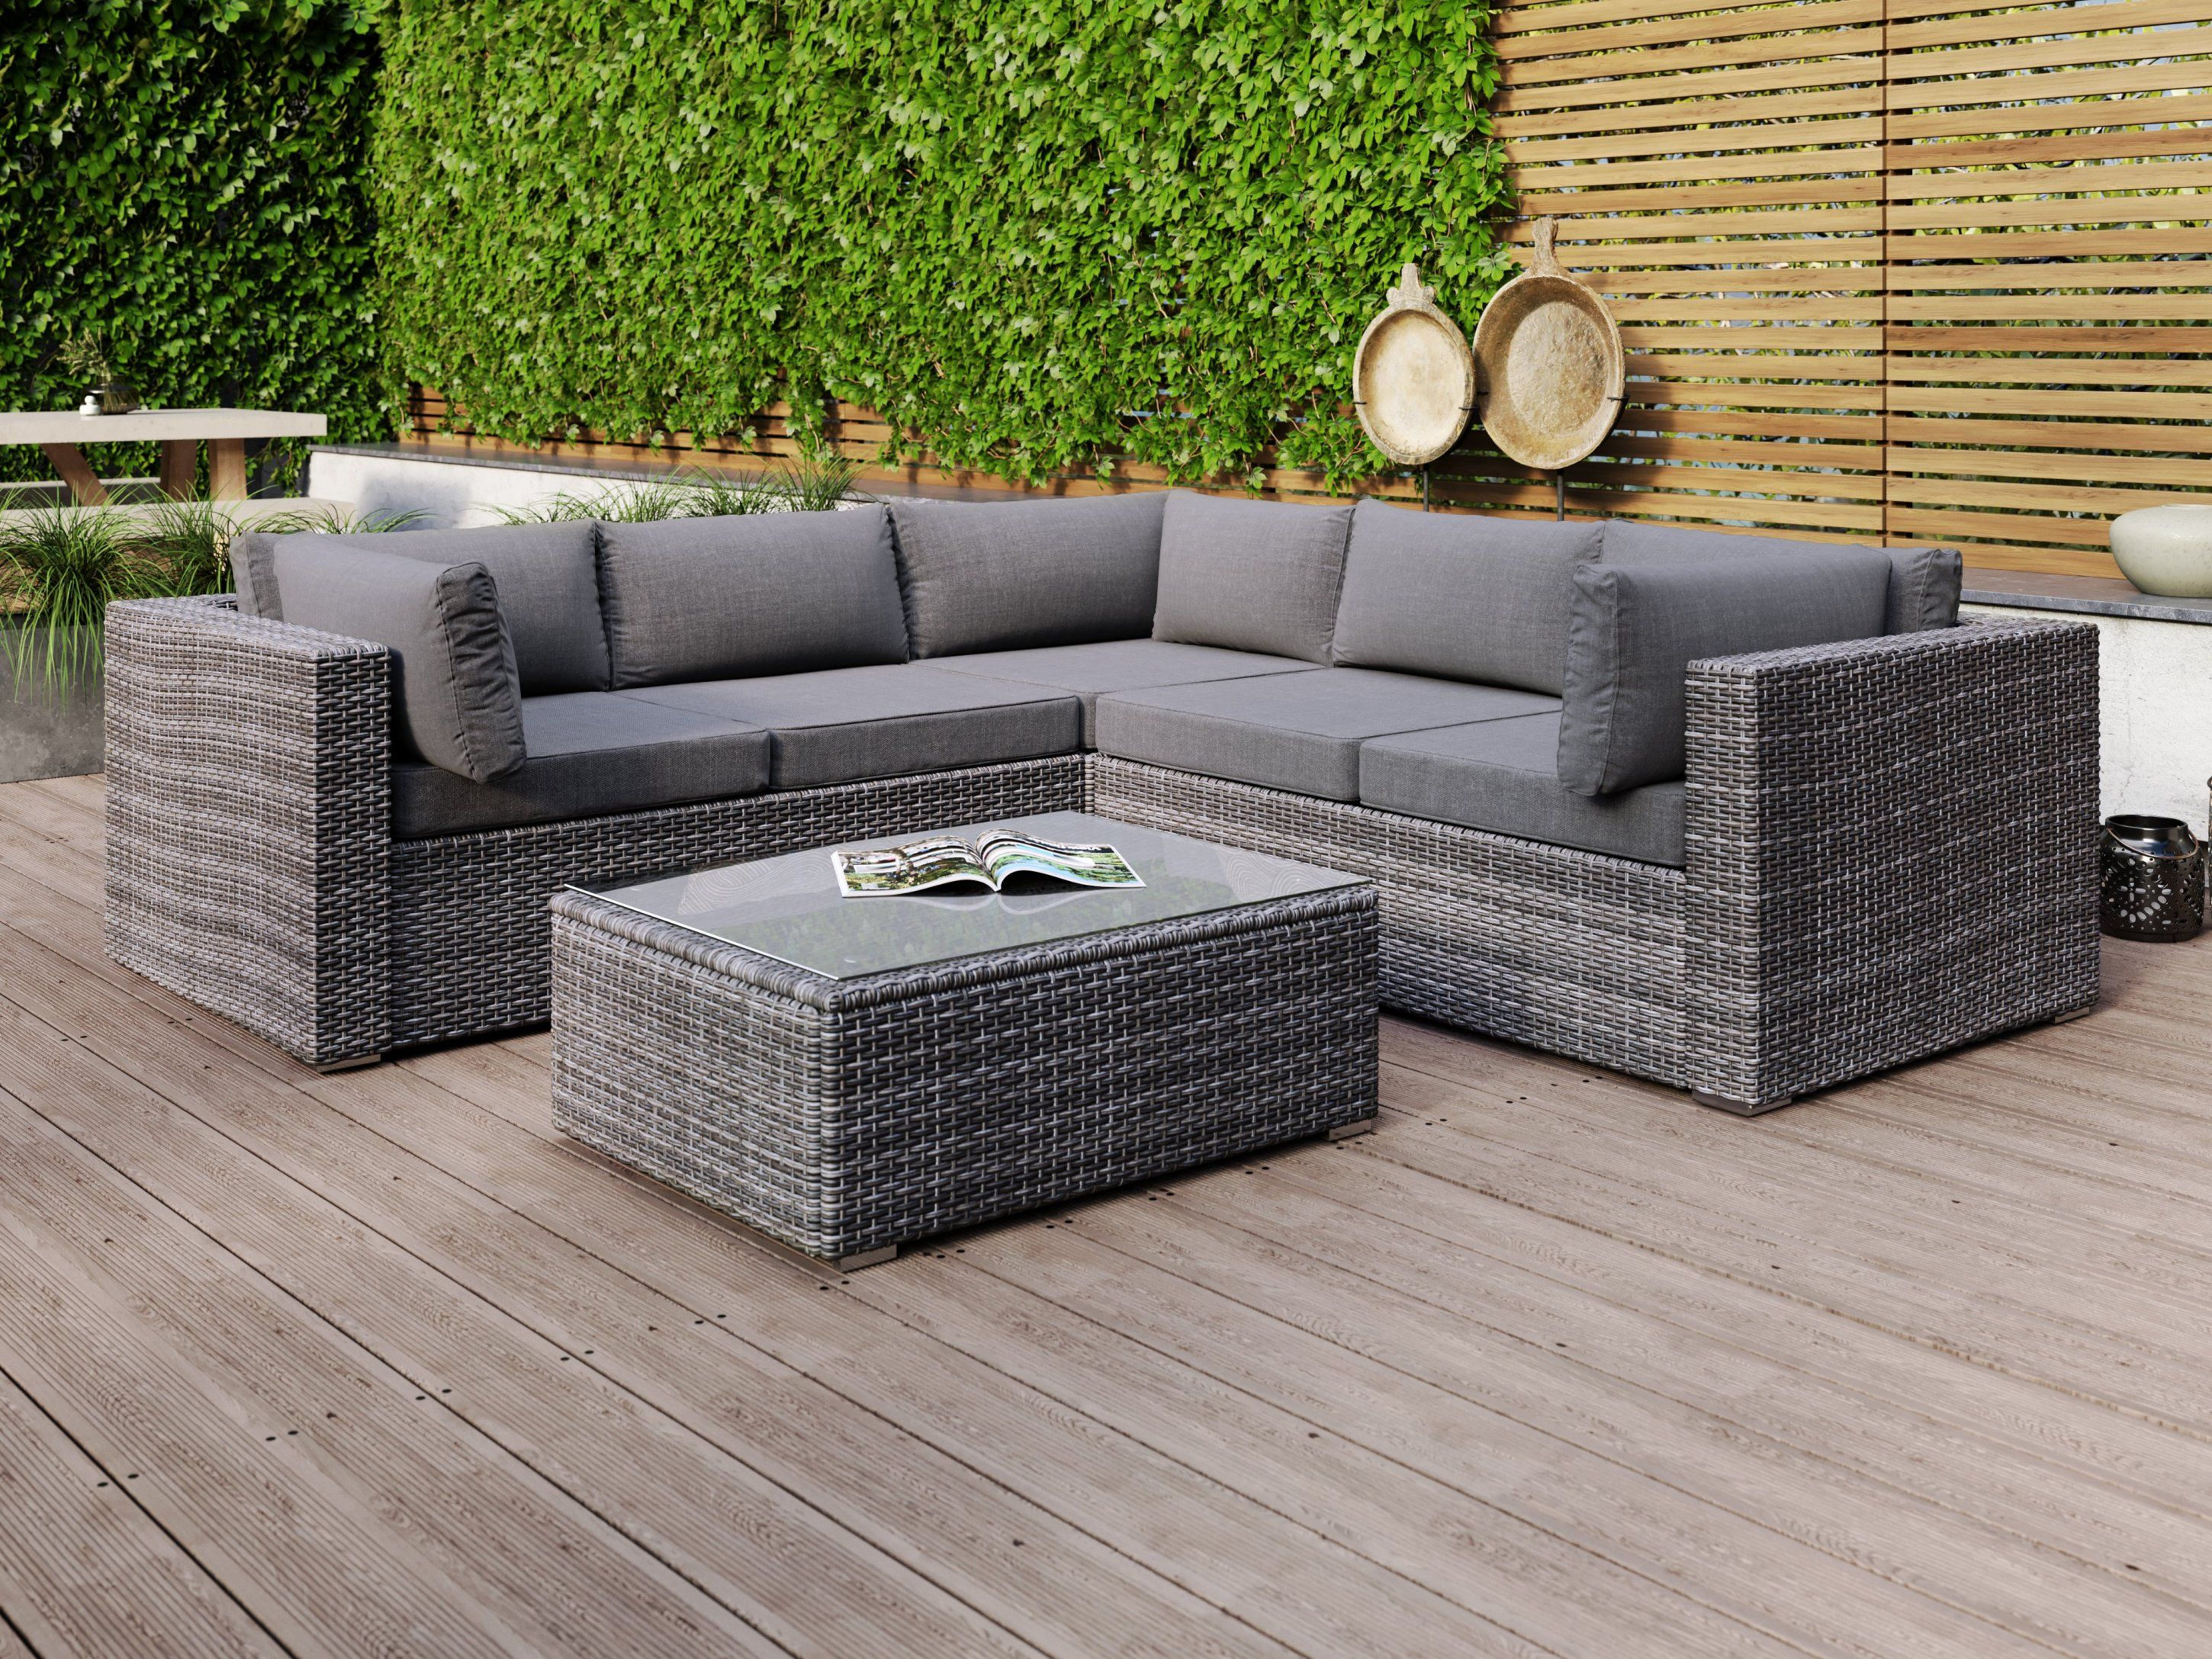 Sandpiper Rattan Corner Suite Dark Outdoor Furniture Nz Outdoor Furniture Best Leather Sofa